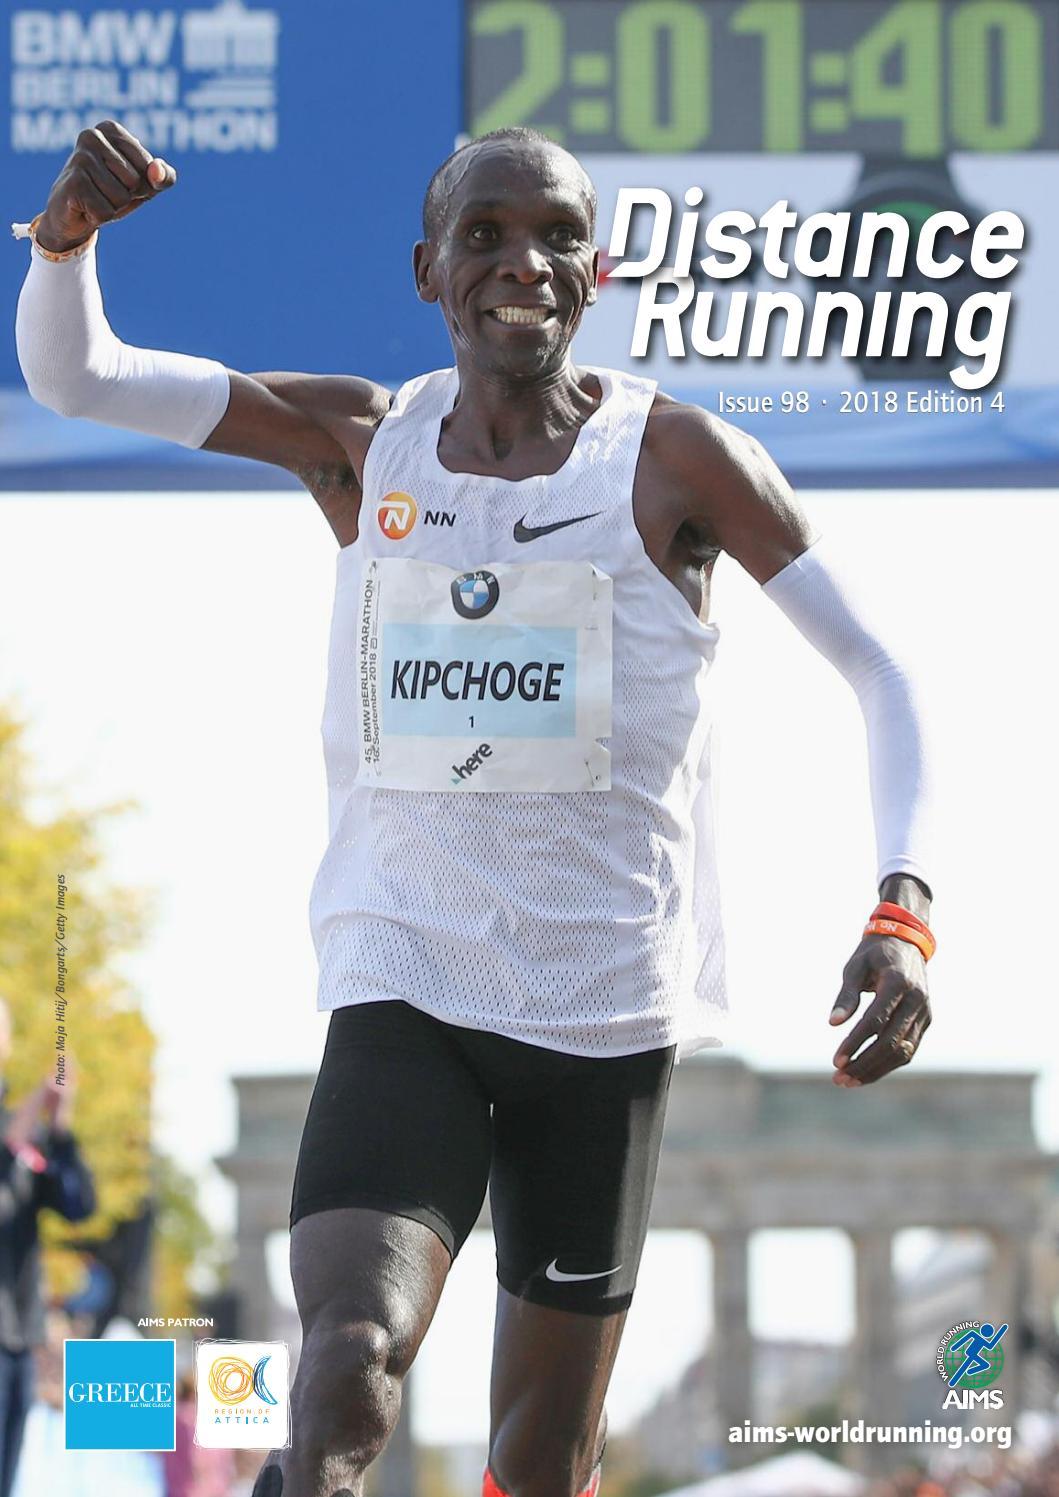 e96db6d62 Distance Running 2018 Edition 4 by Distance Running - issuu